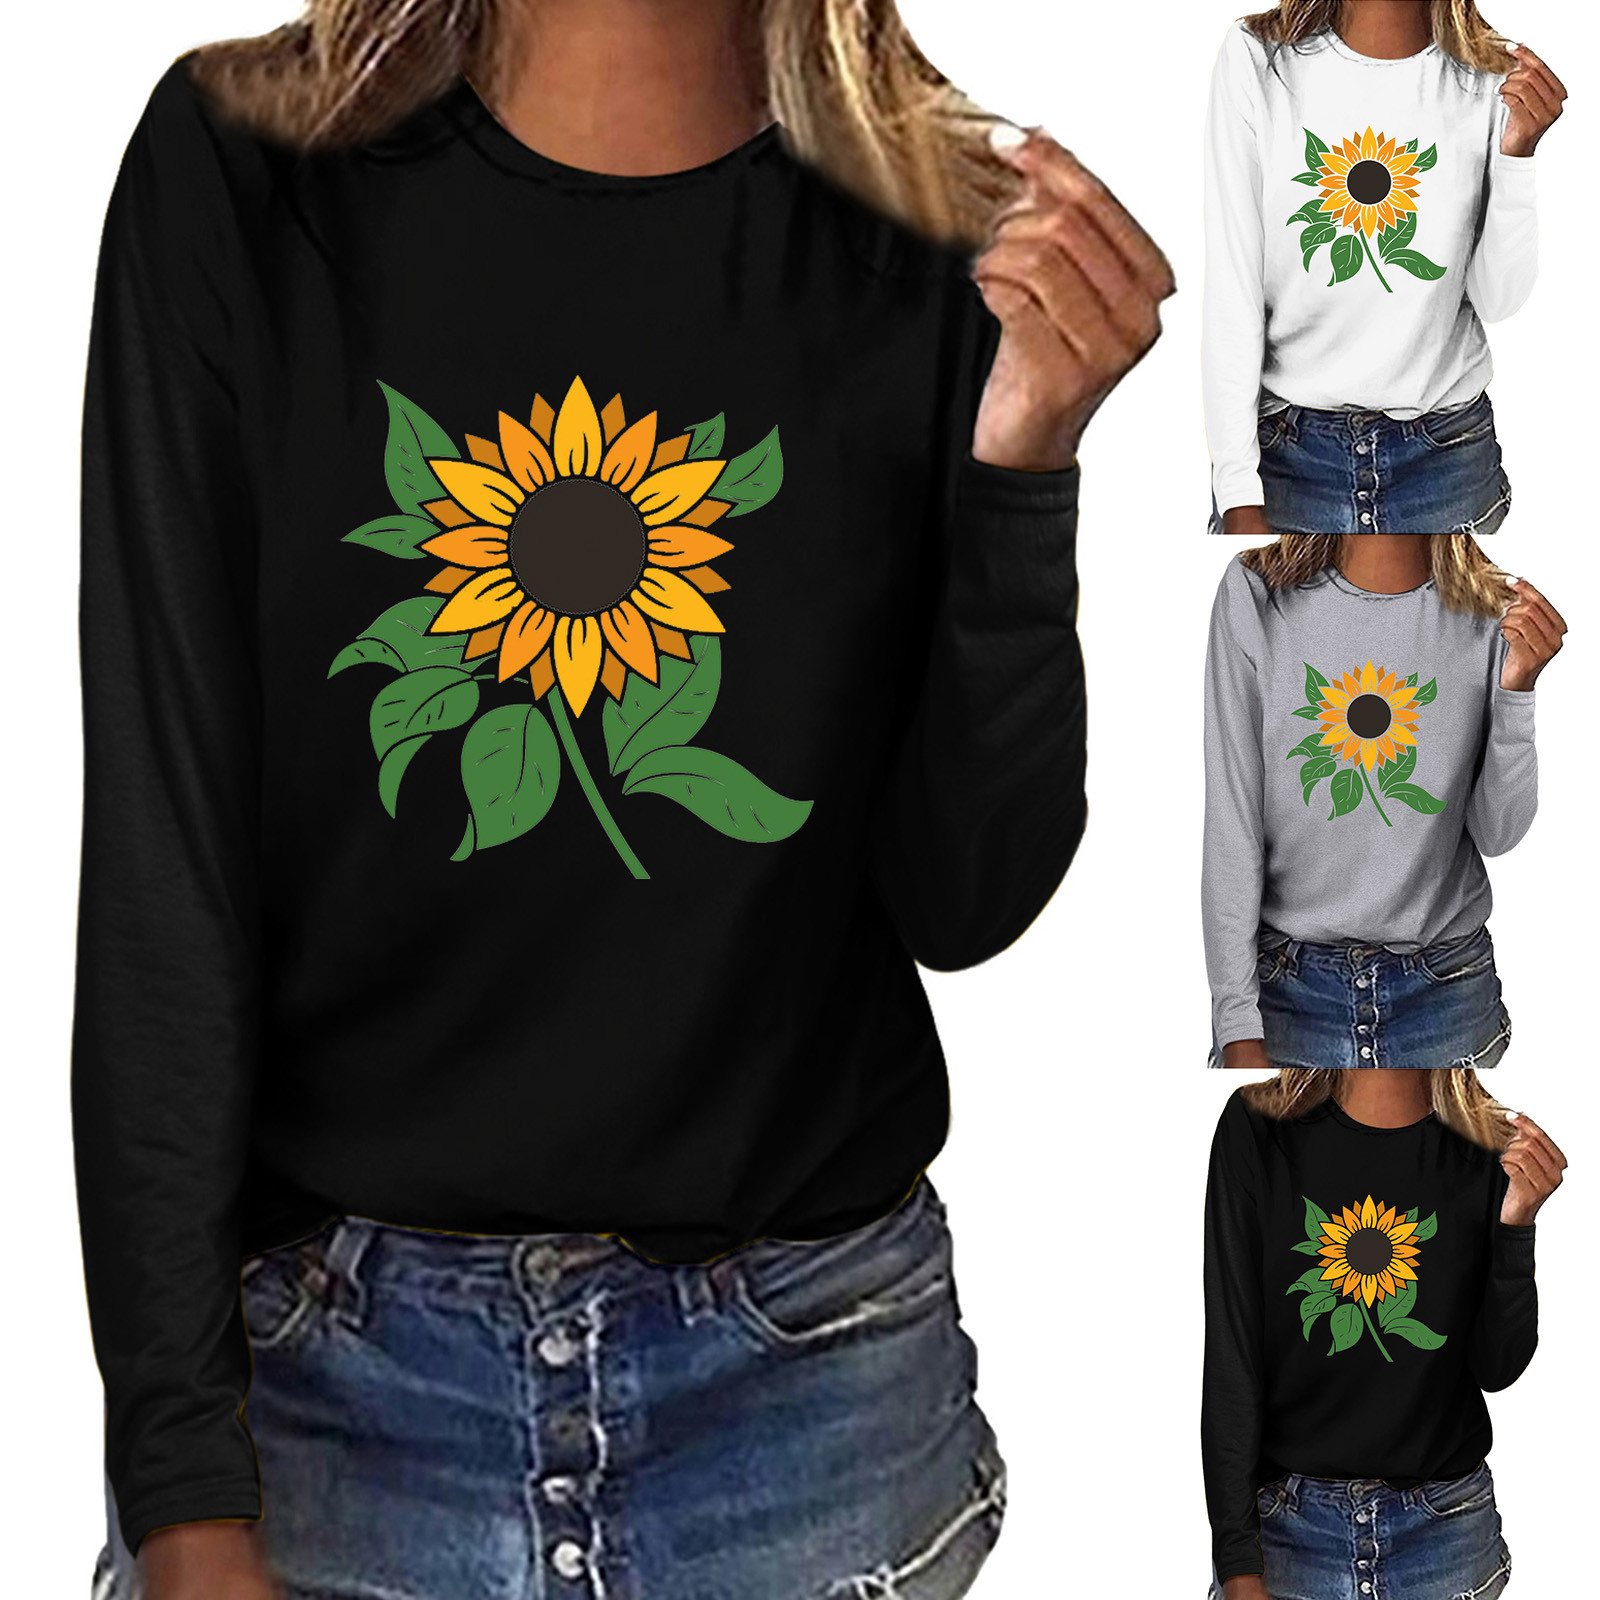 New Autumn Women's Fashion T-Shirts Sunflower Printed Plus Size Tee Shirt Round Neck Long Sleeve Lady Casual Loose TShirts Tops